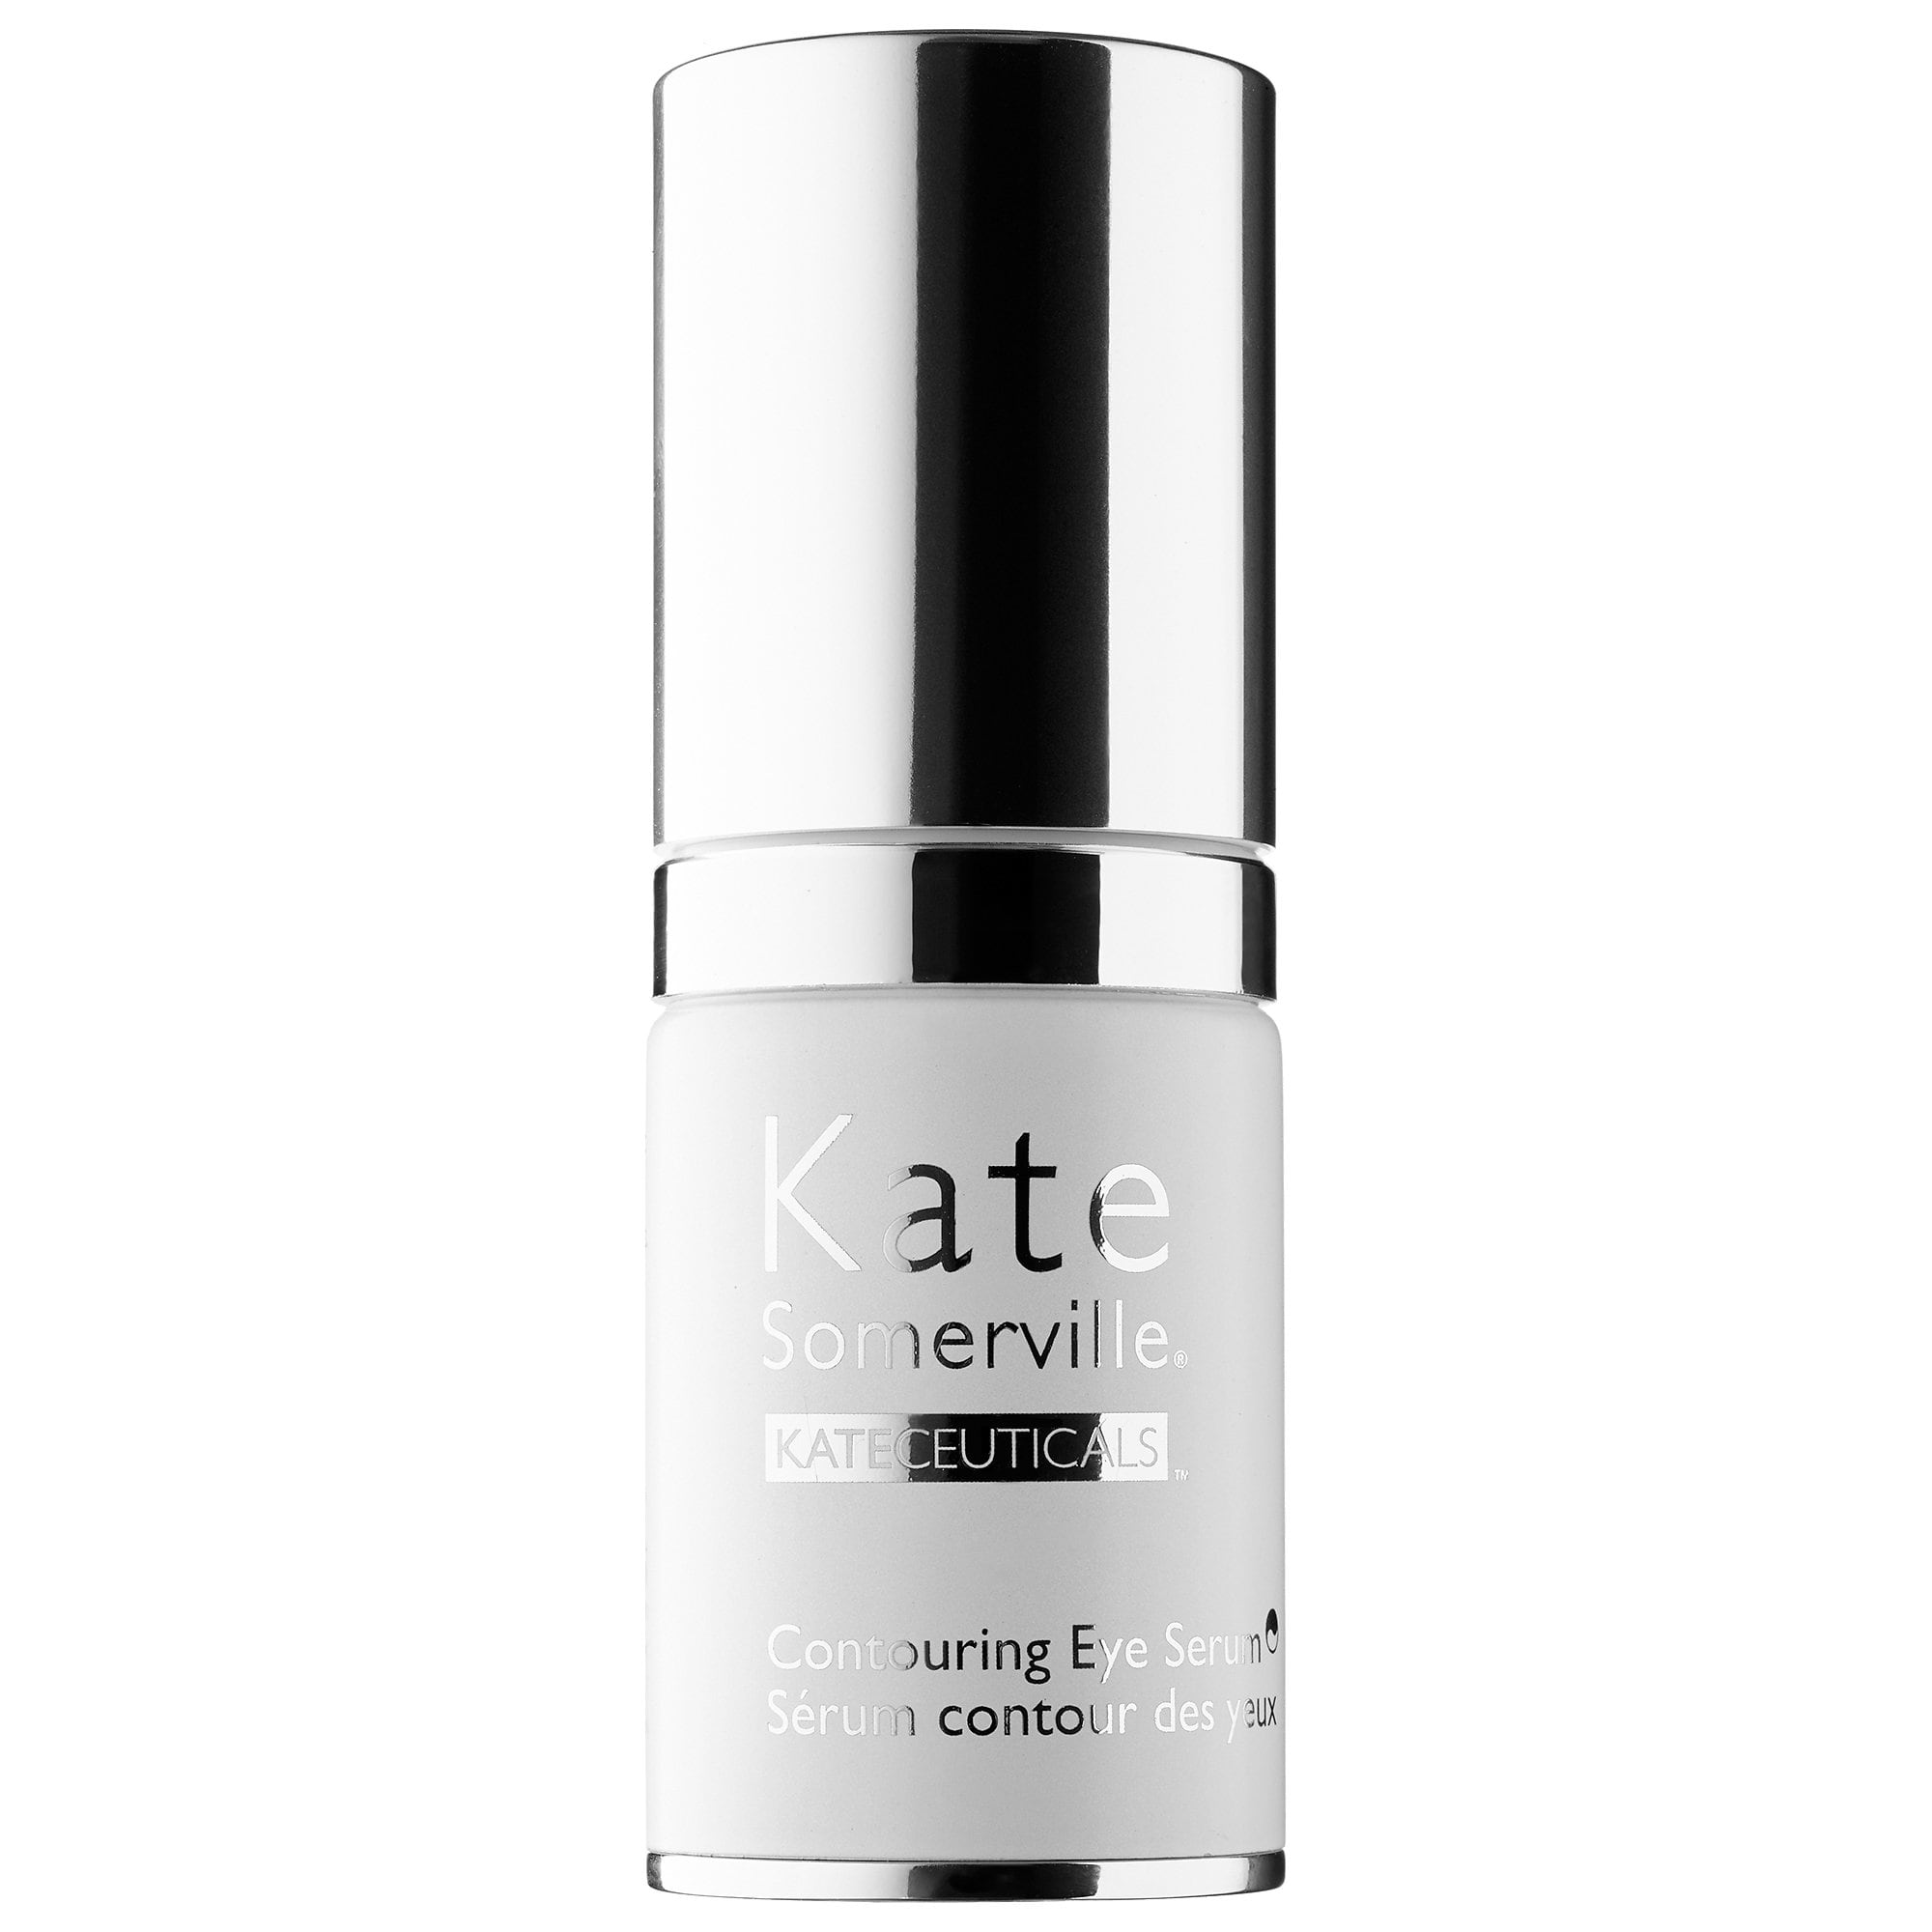 KateCeuticals™ Contouring Eye Serum